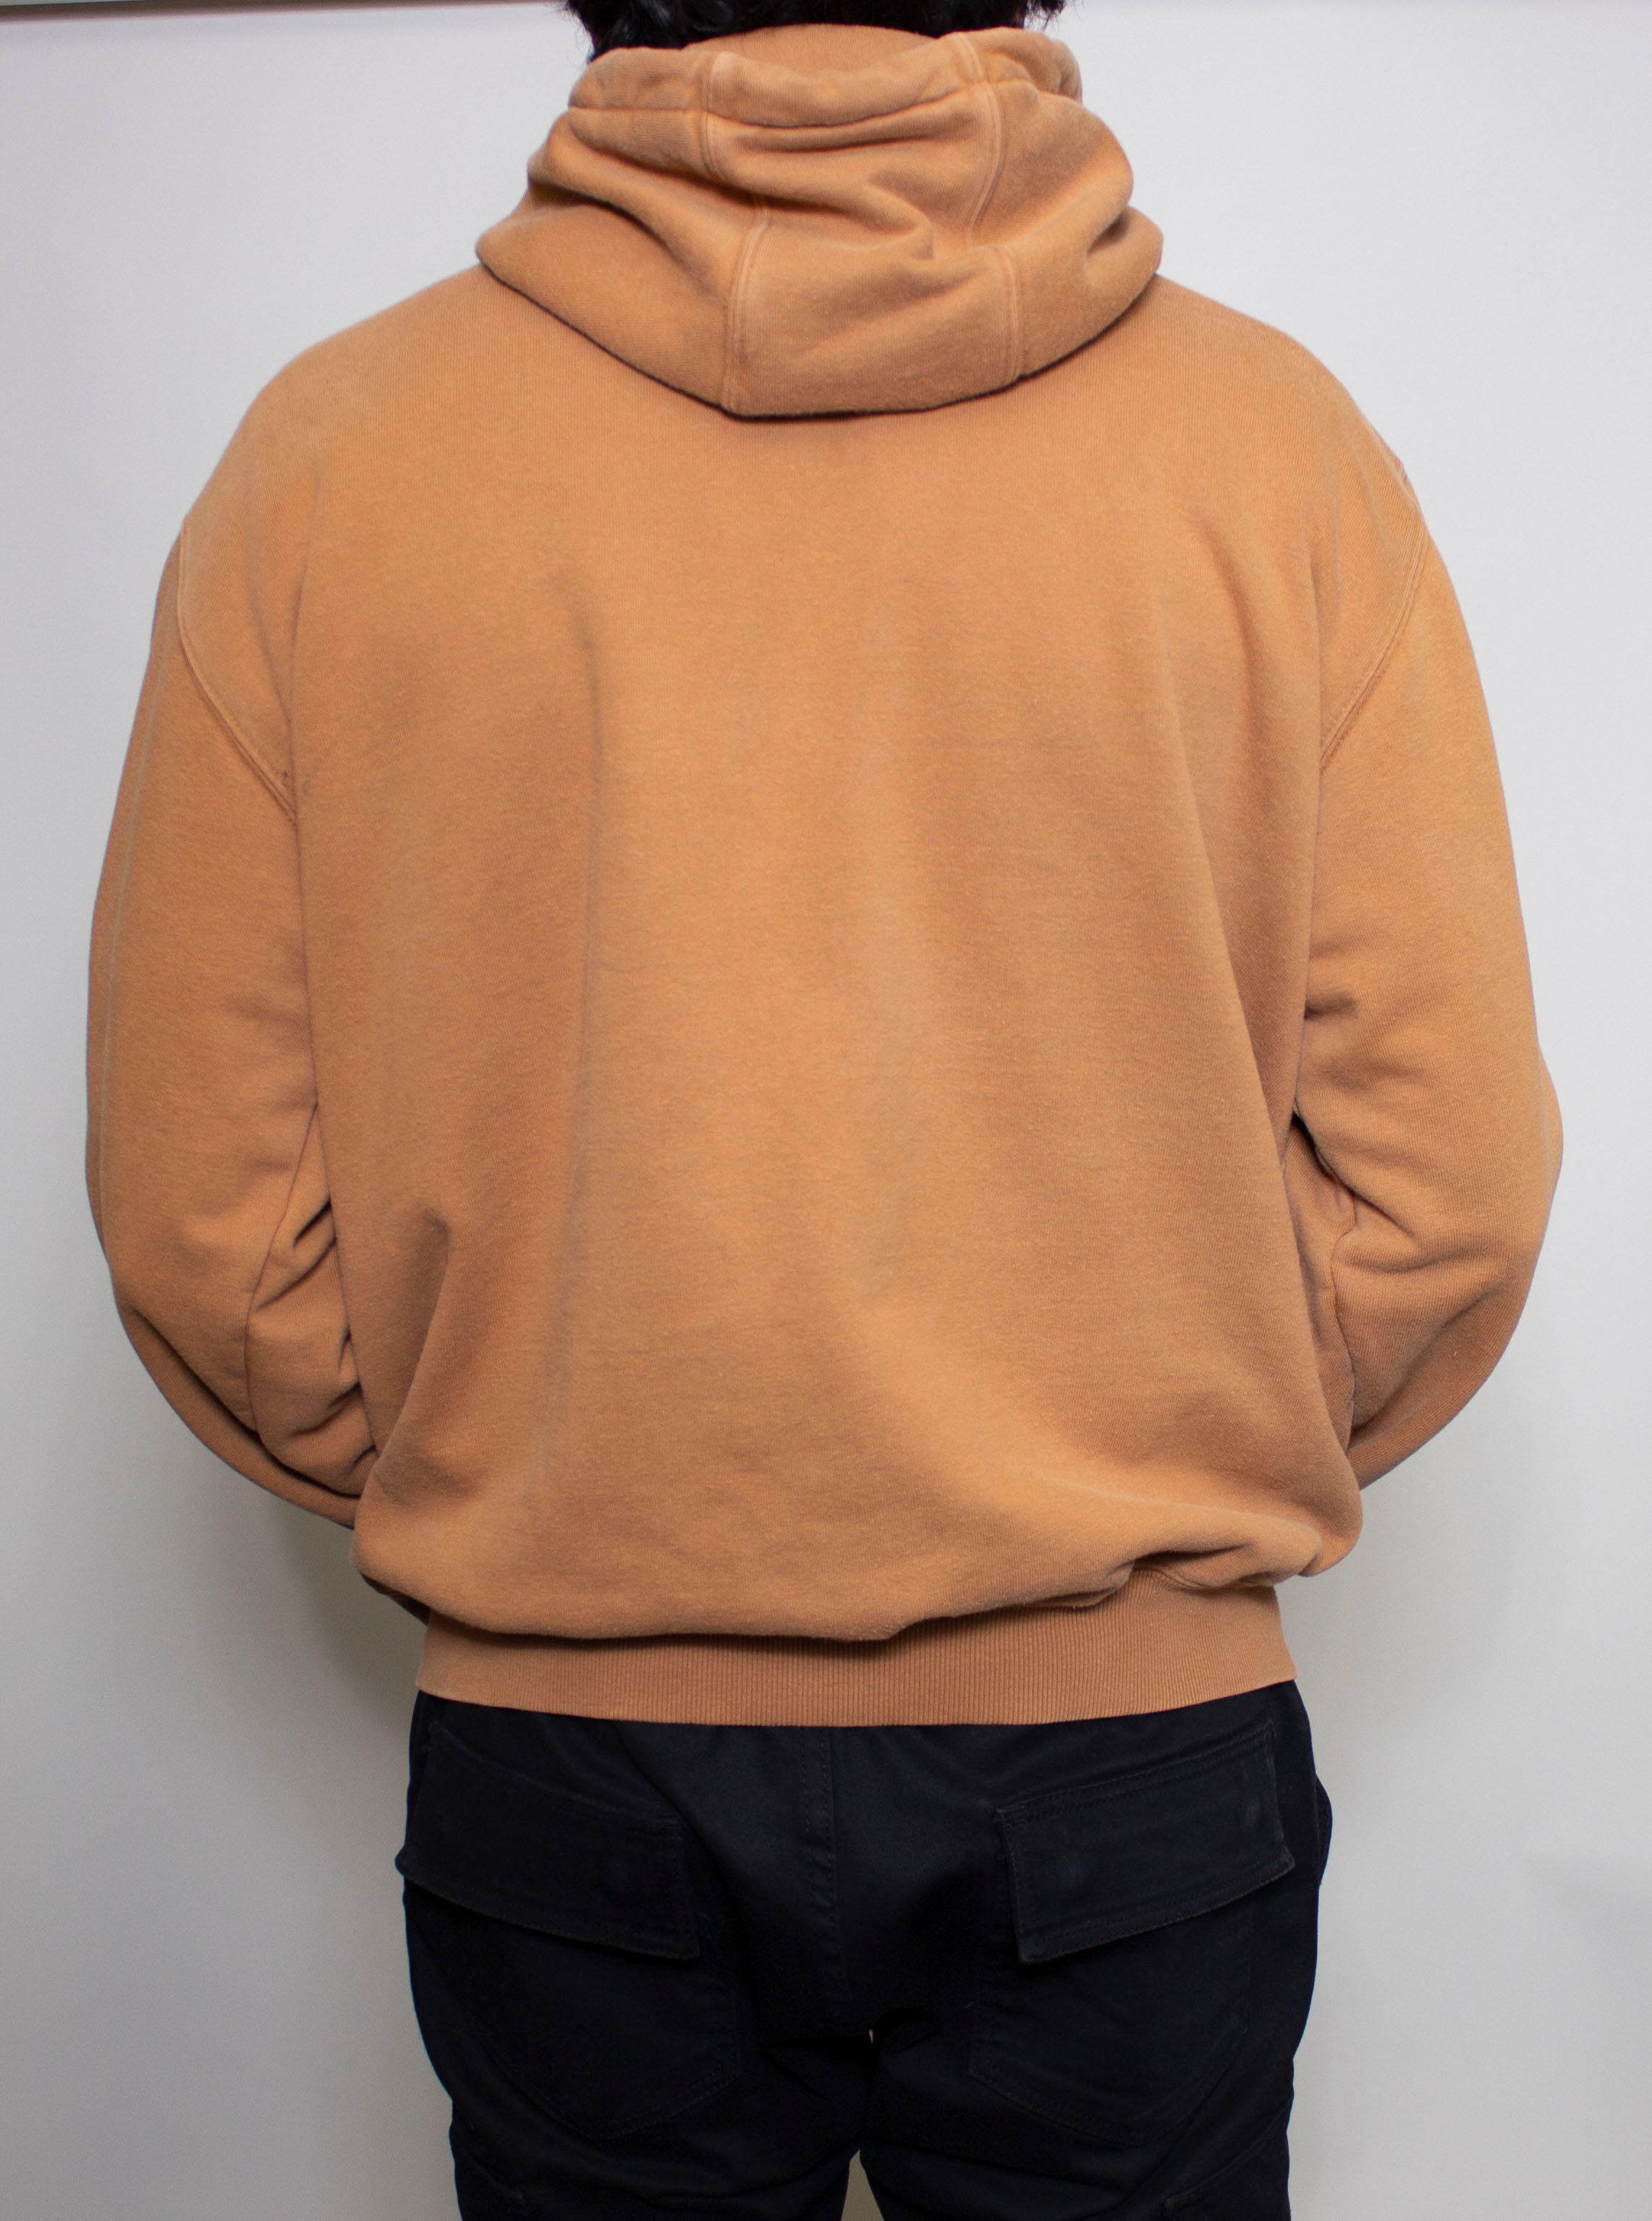 Carhartt Brown Zipup